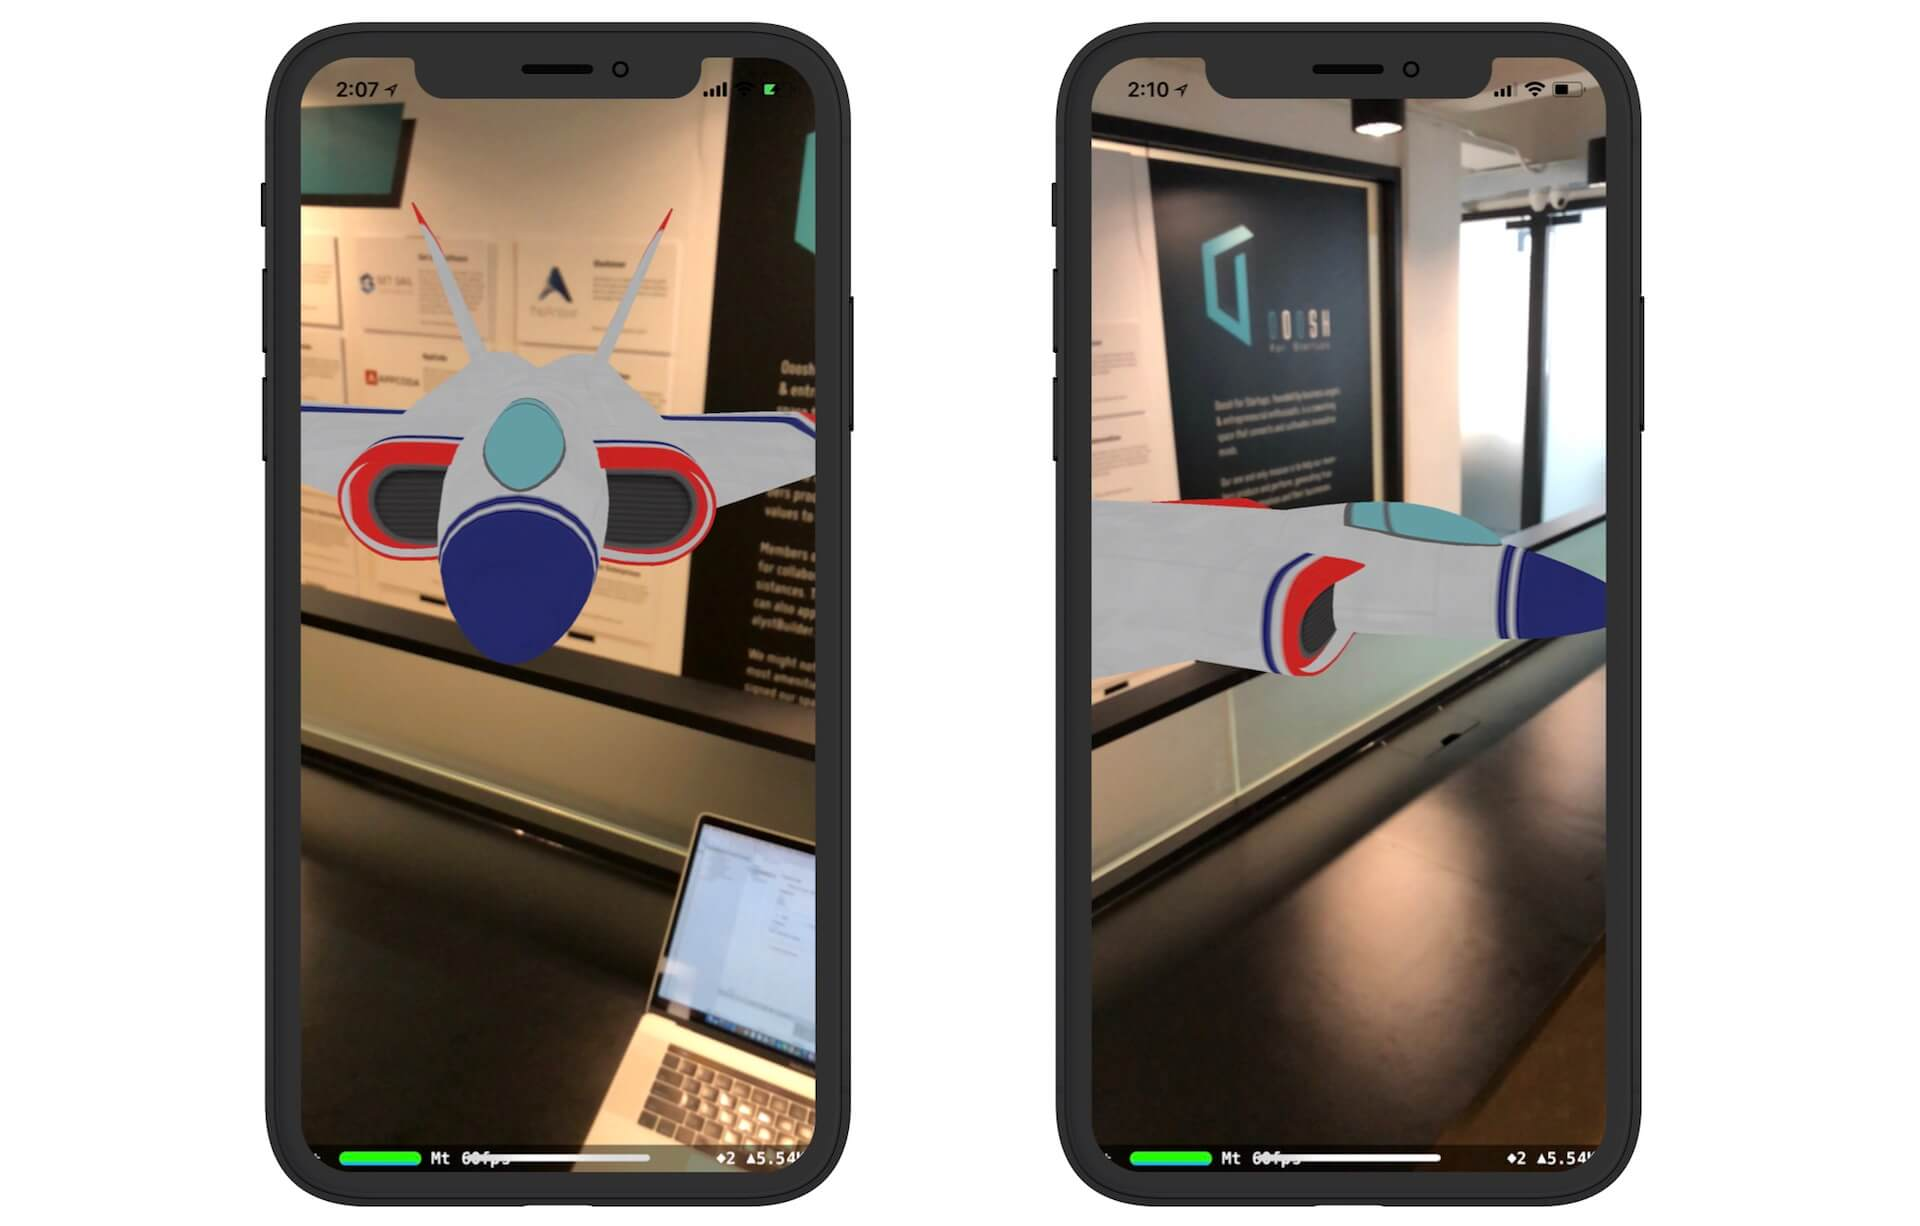 Chapter 42 - Working with 3D Objects in Augmented Reality